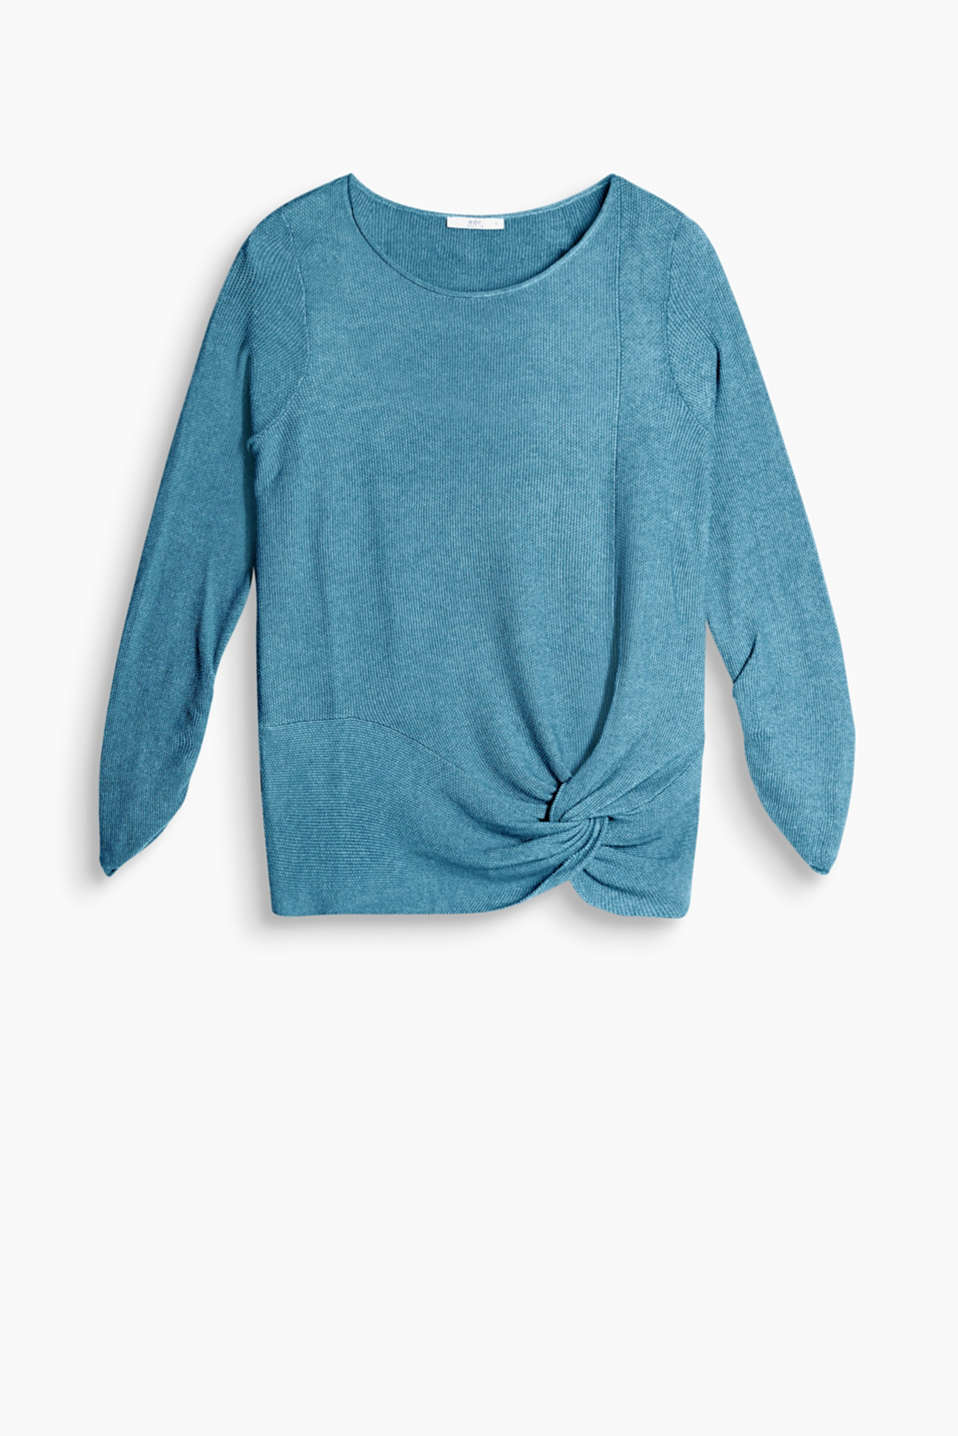 Jumper in a grainy purl knit with draped effects on the hem and sleeves